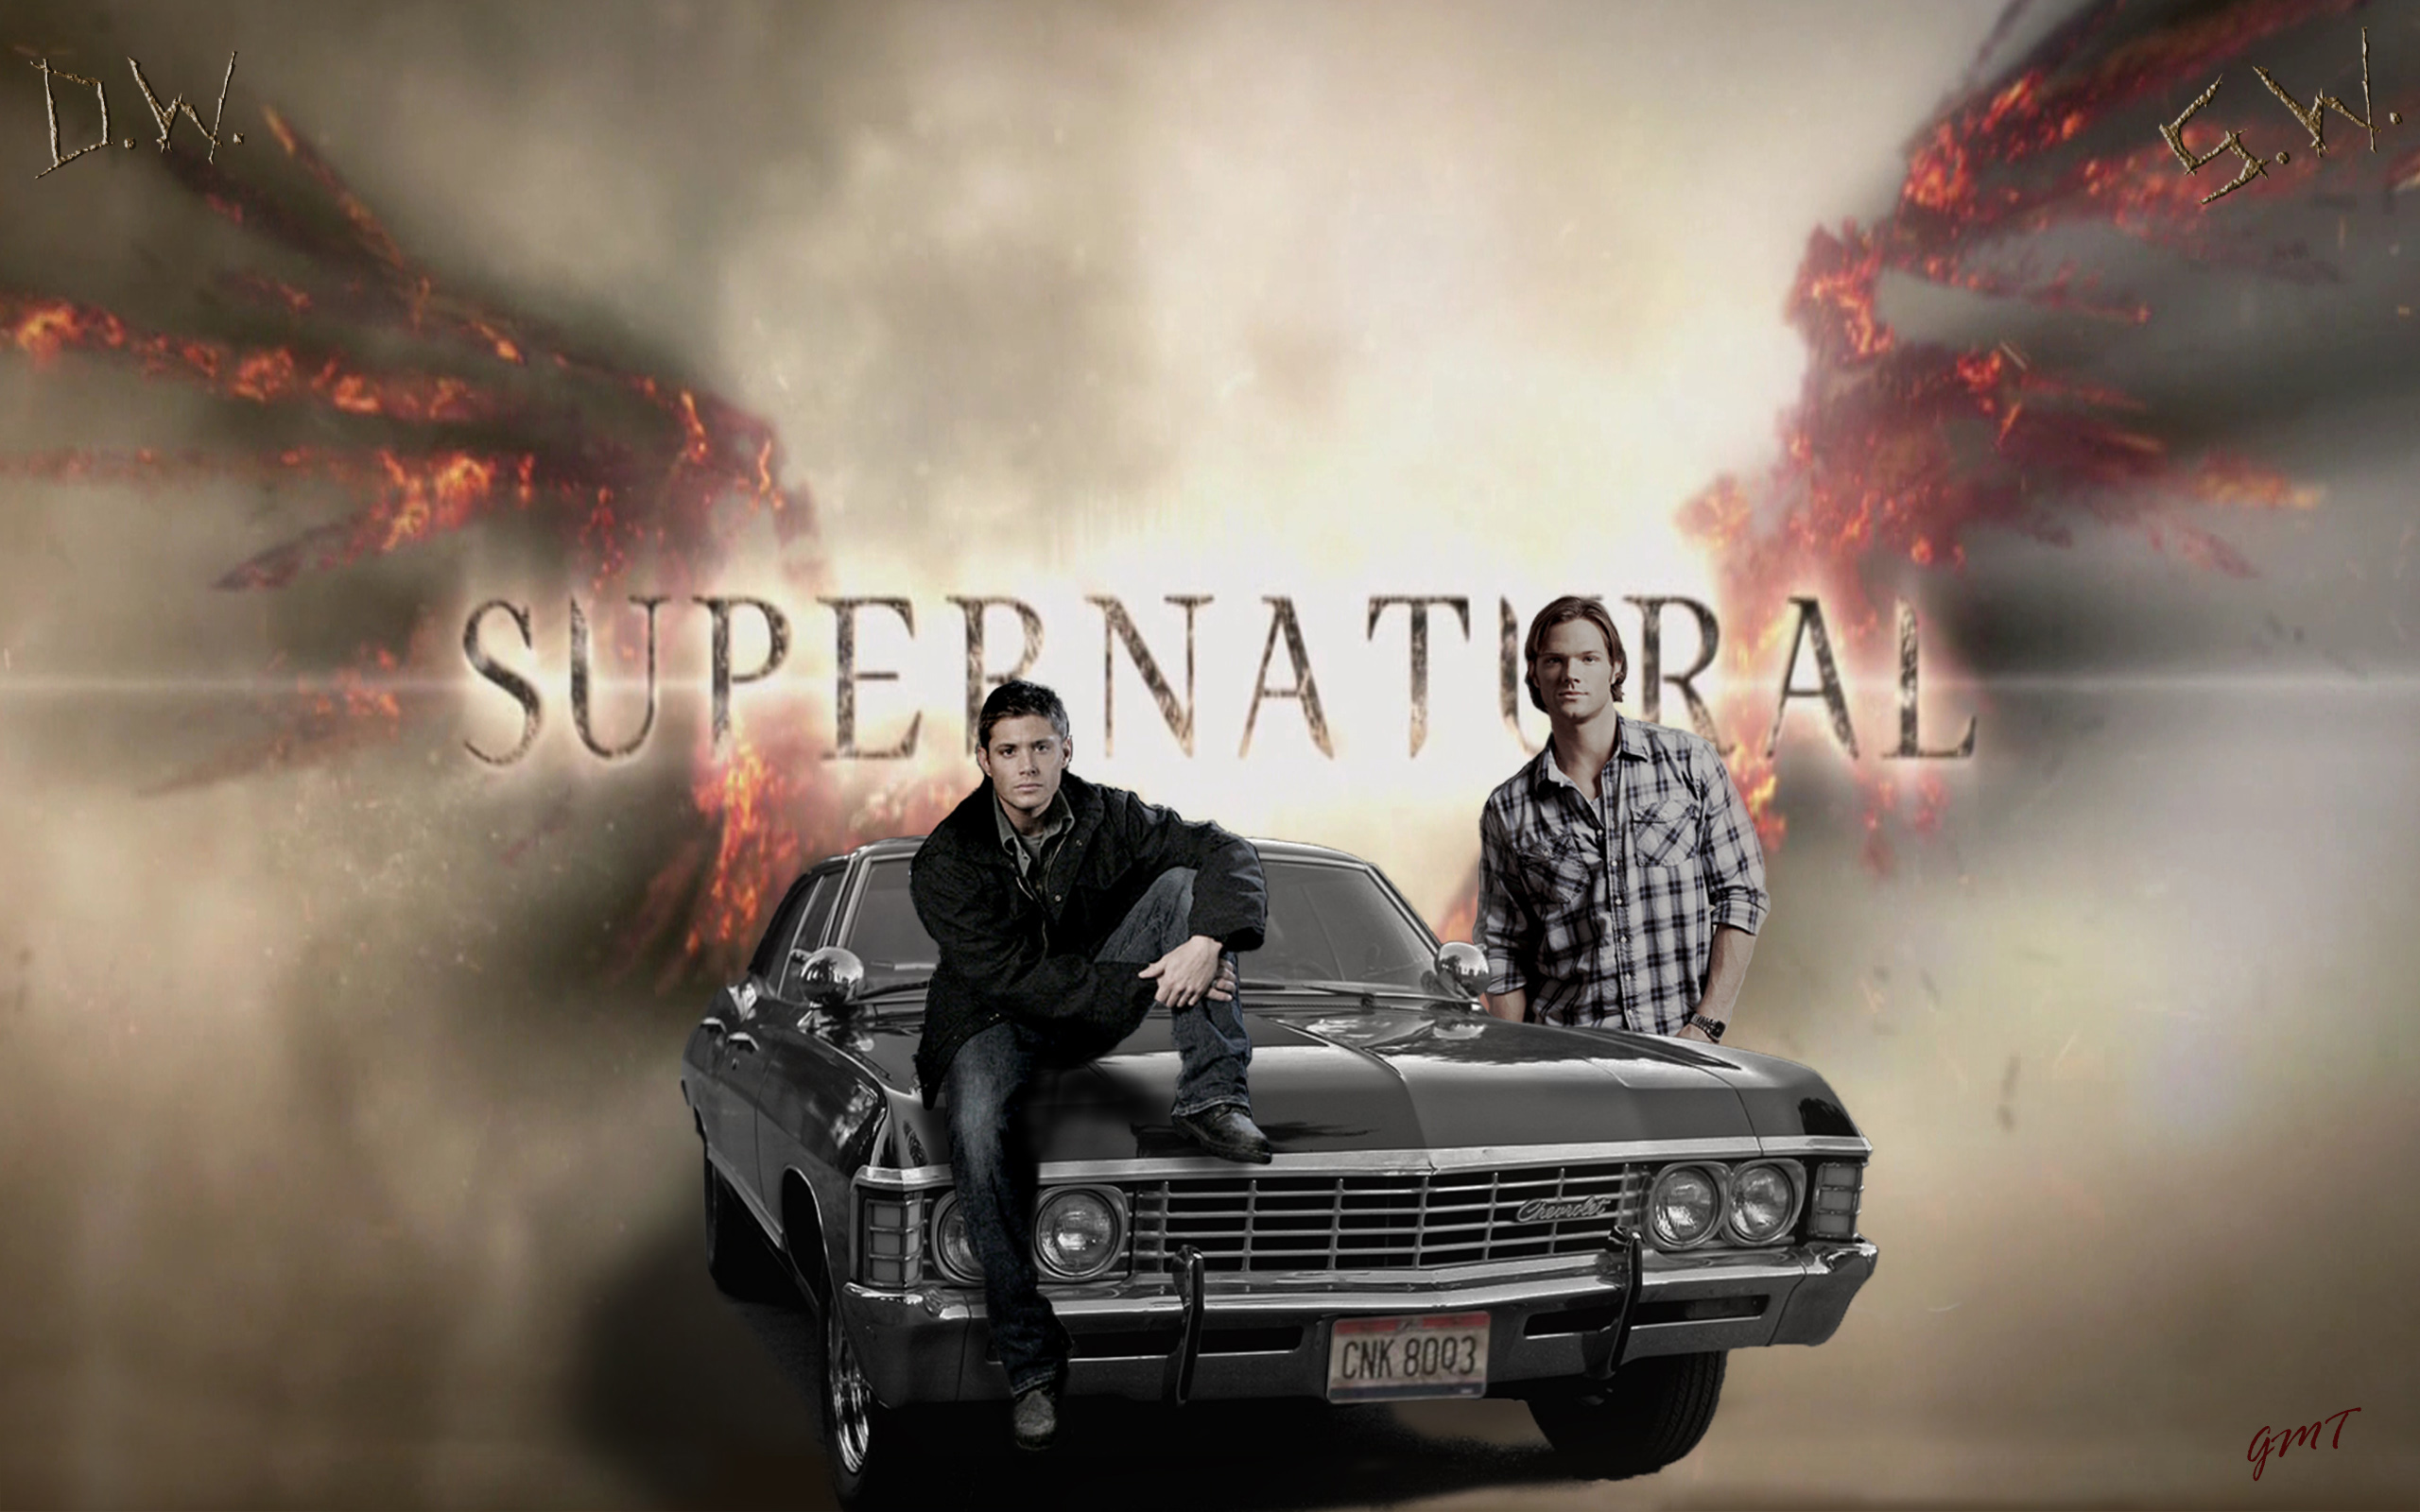 Hd Love Wallpapers For Mobile Free Download Supernatural Hd Backgrounds Pixelstalk Net